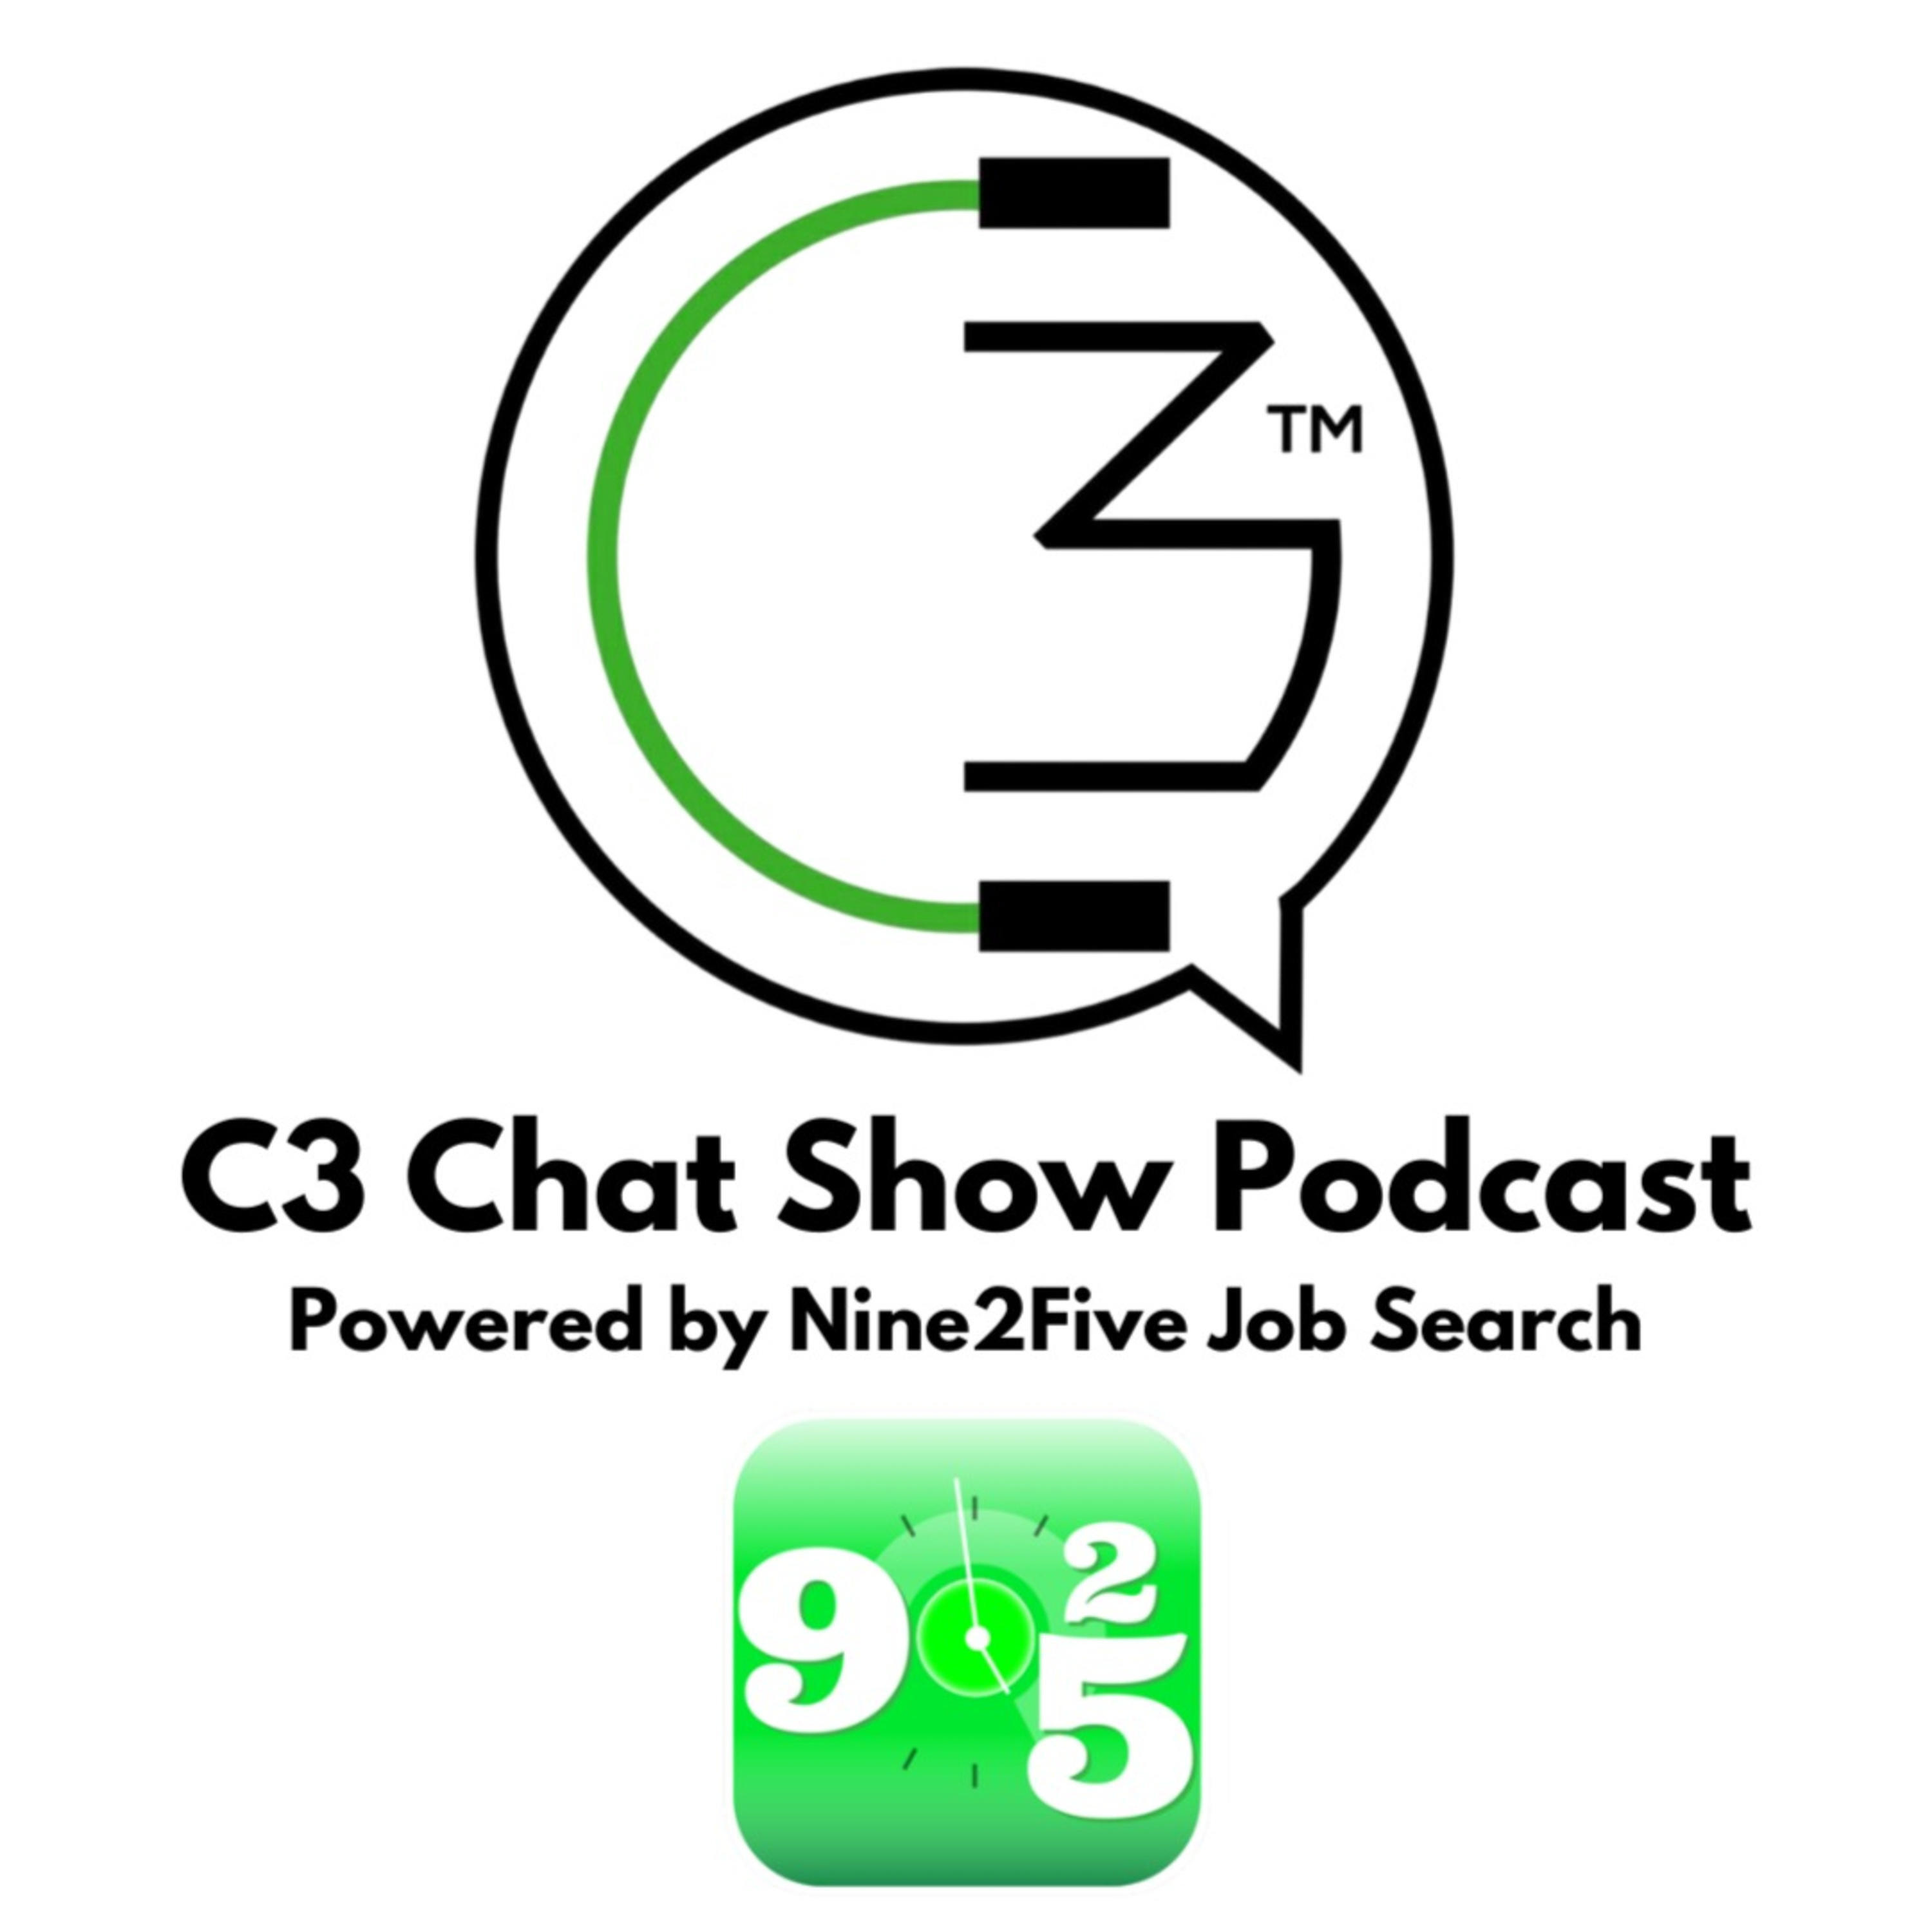 C3 Chat Show